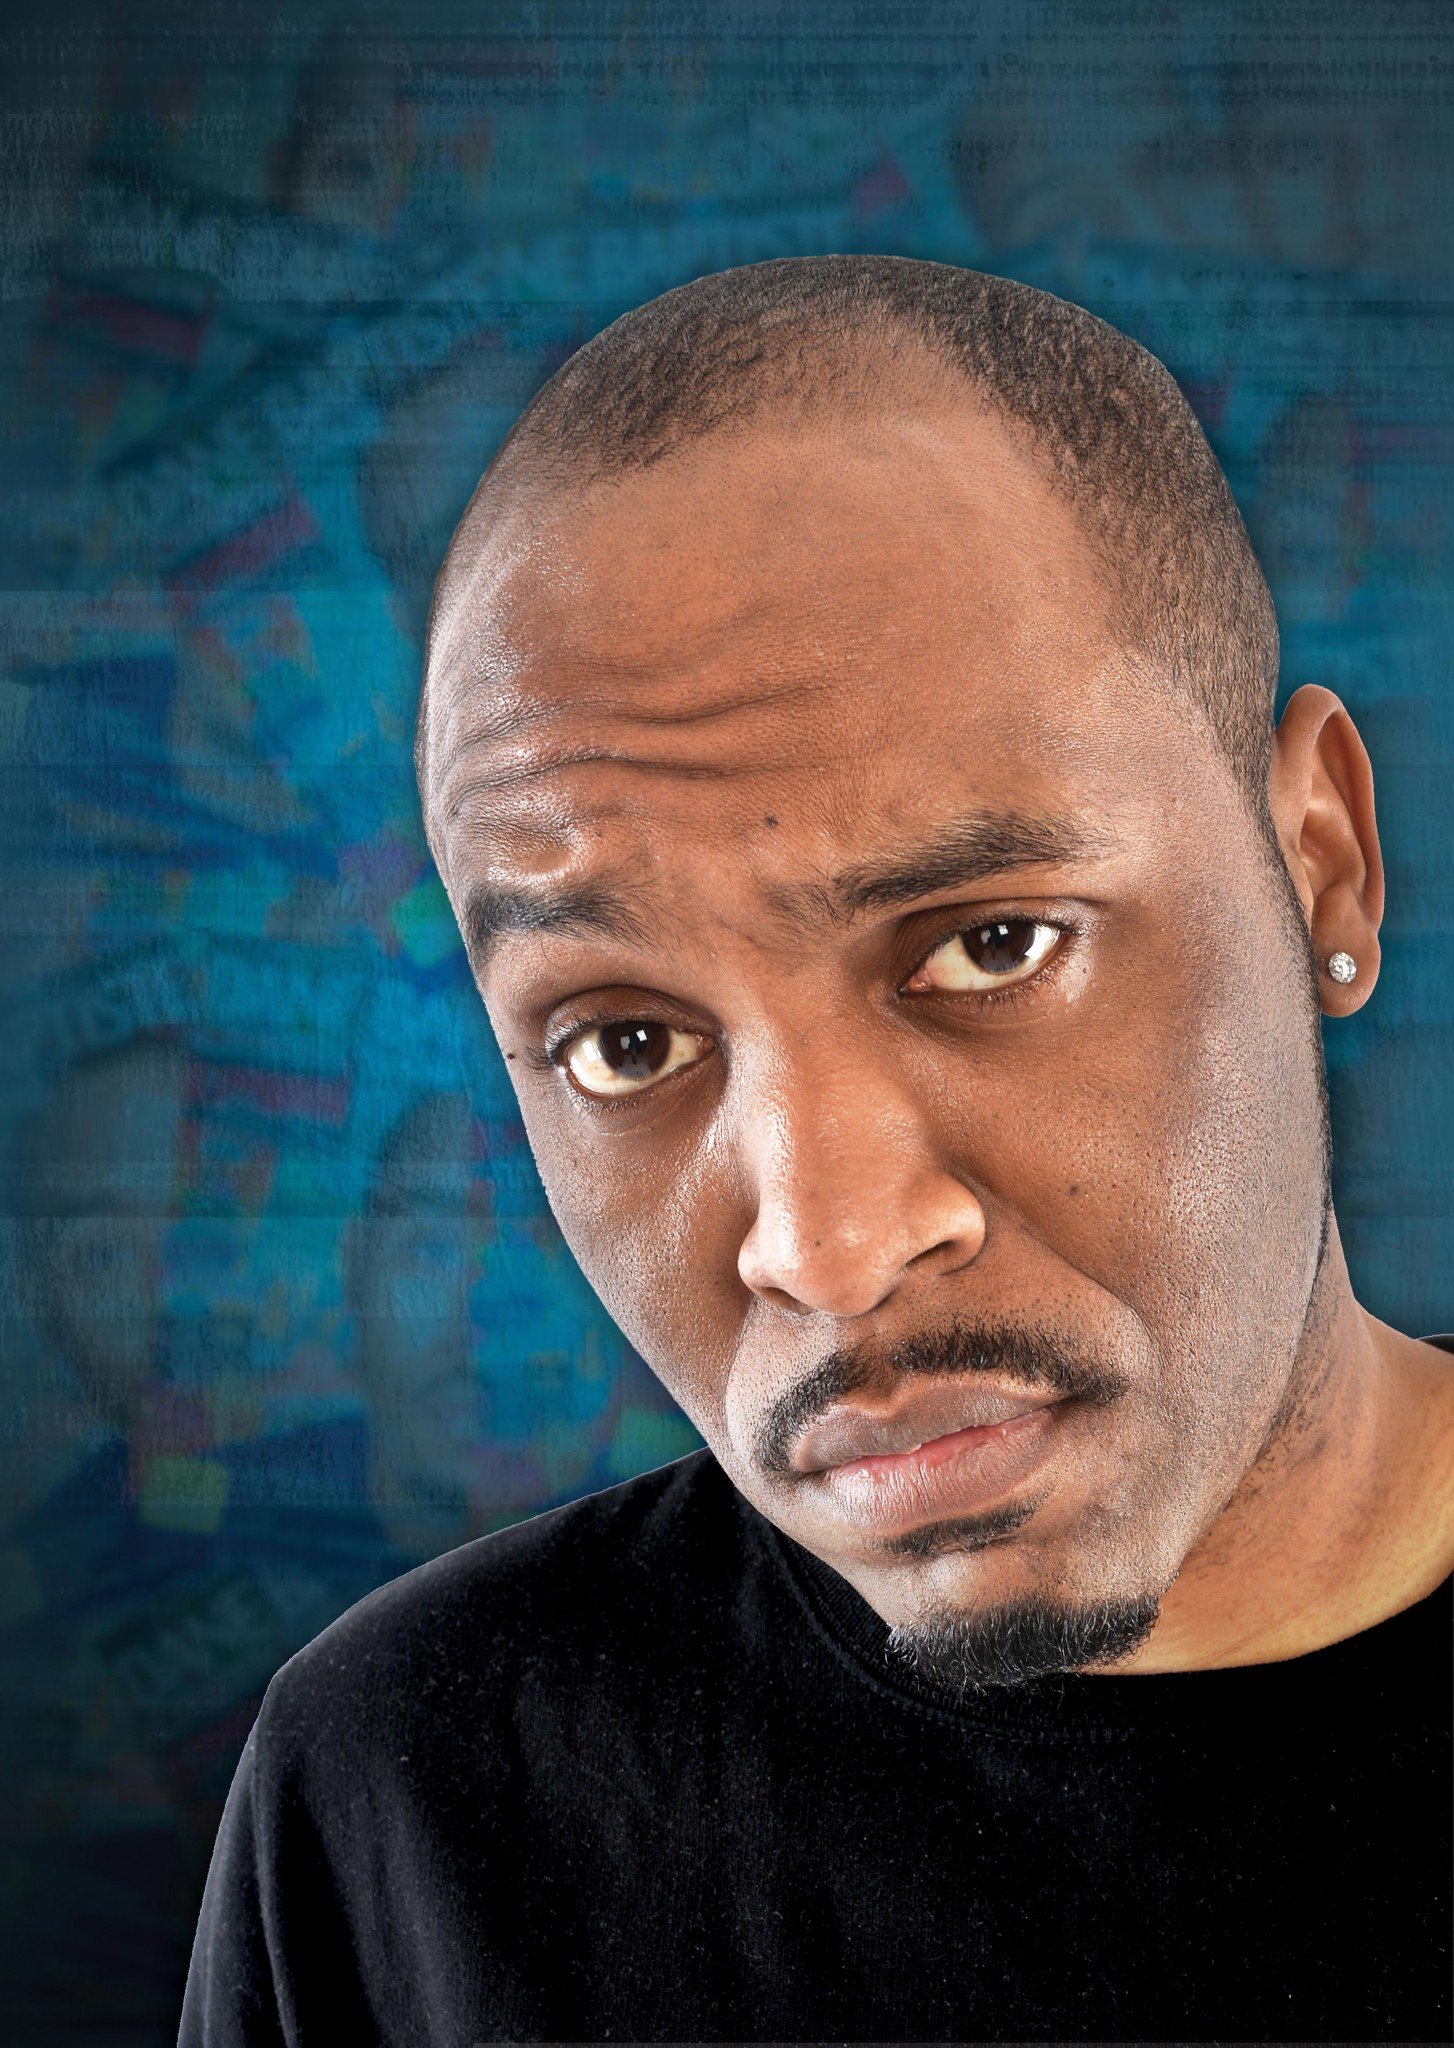 Live From The BBC star Dane Baptiste